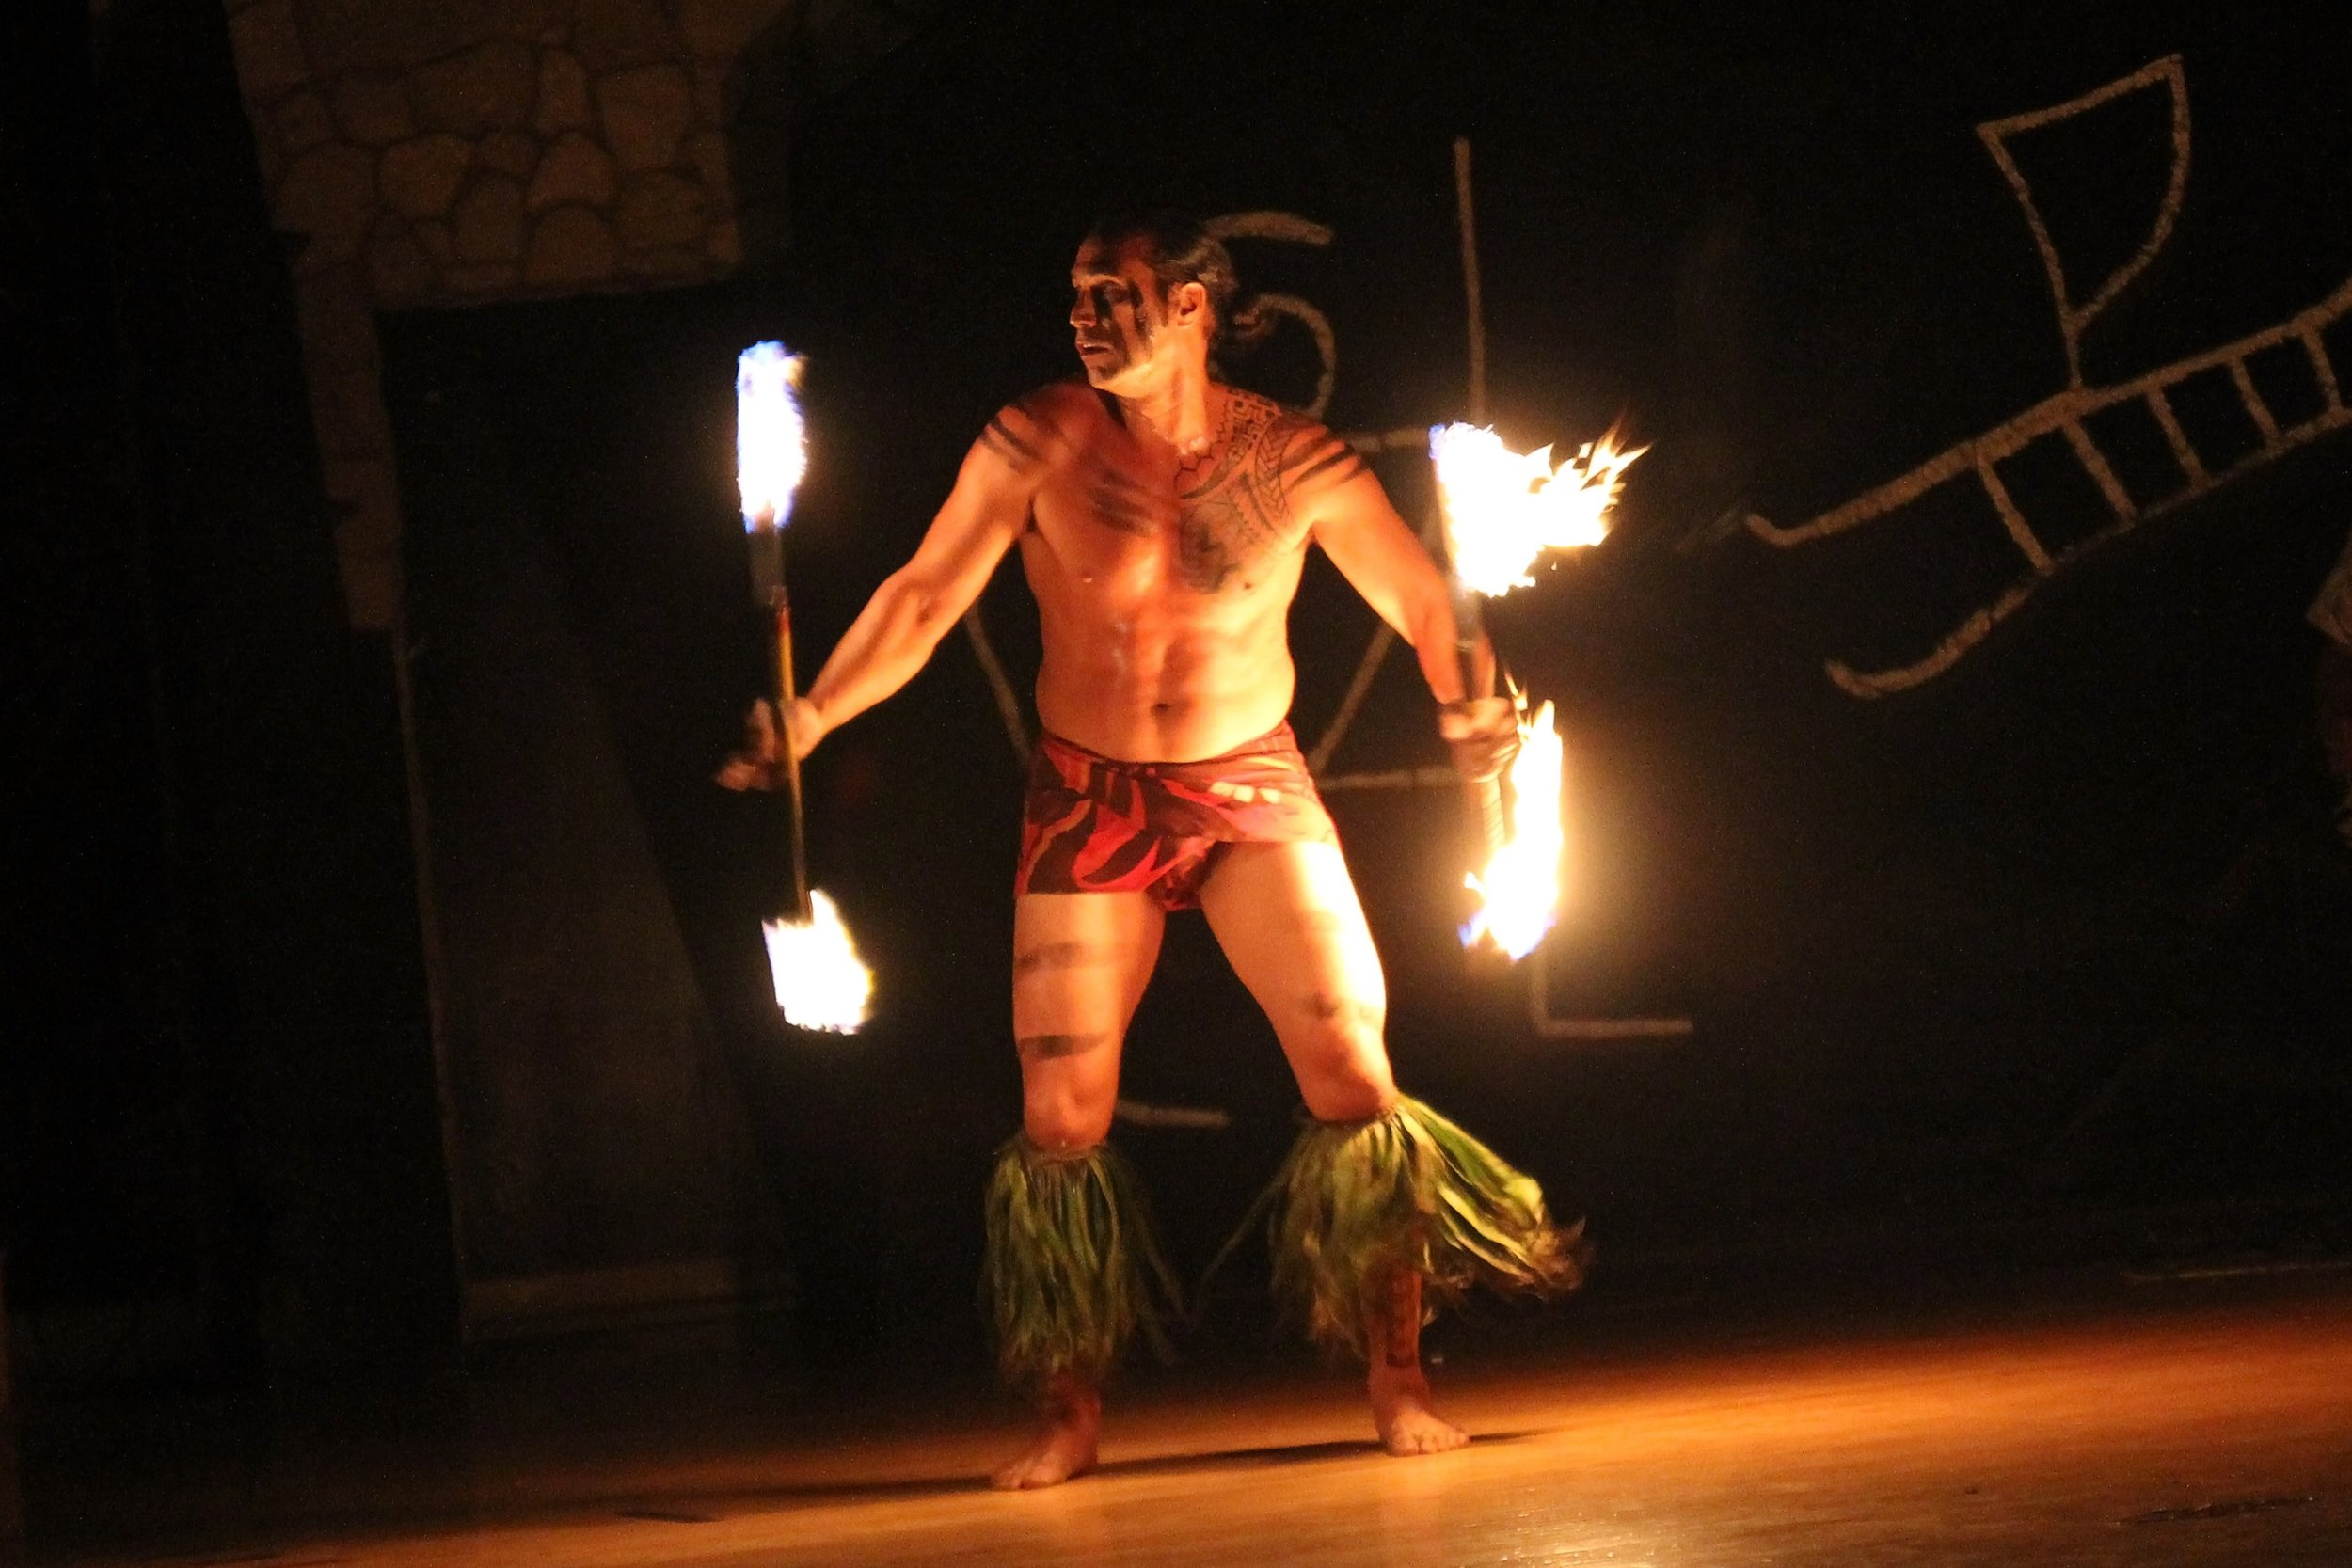 A Hawaiian man performing a fire dance with torches